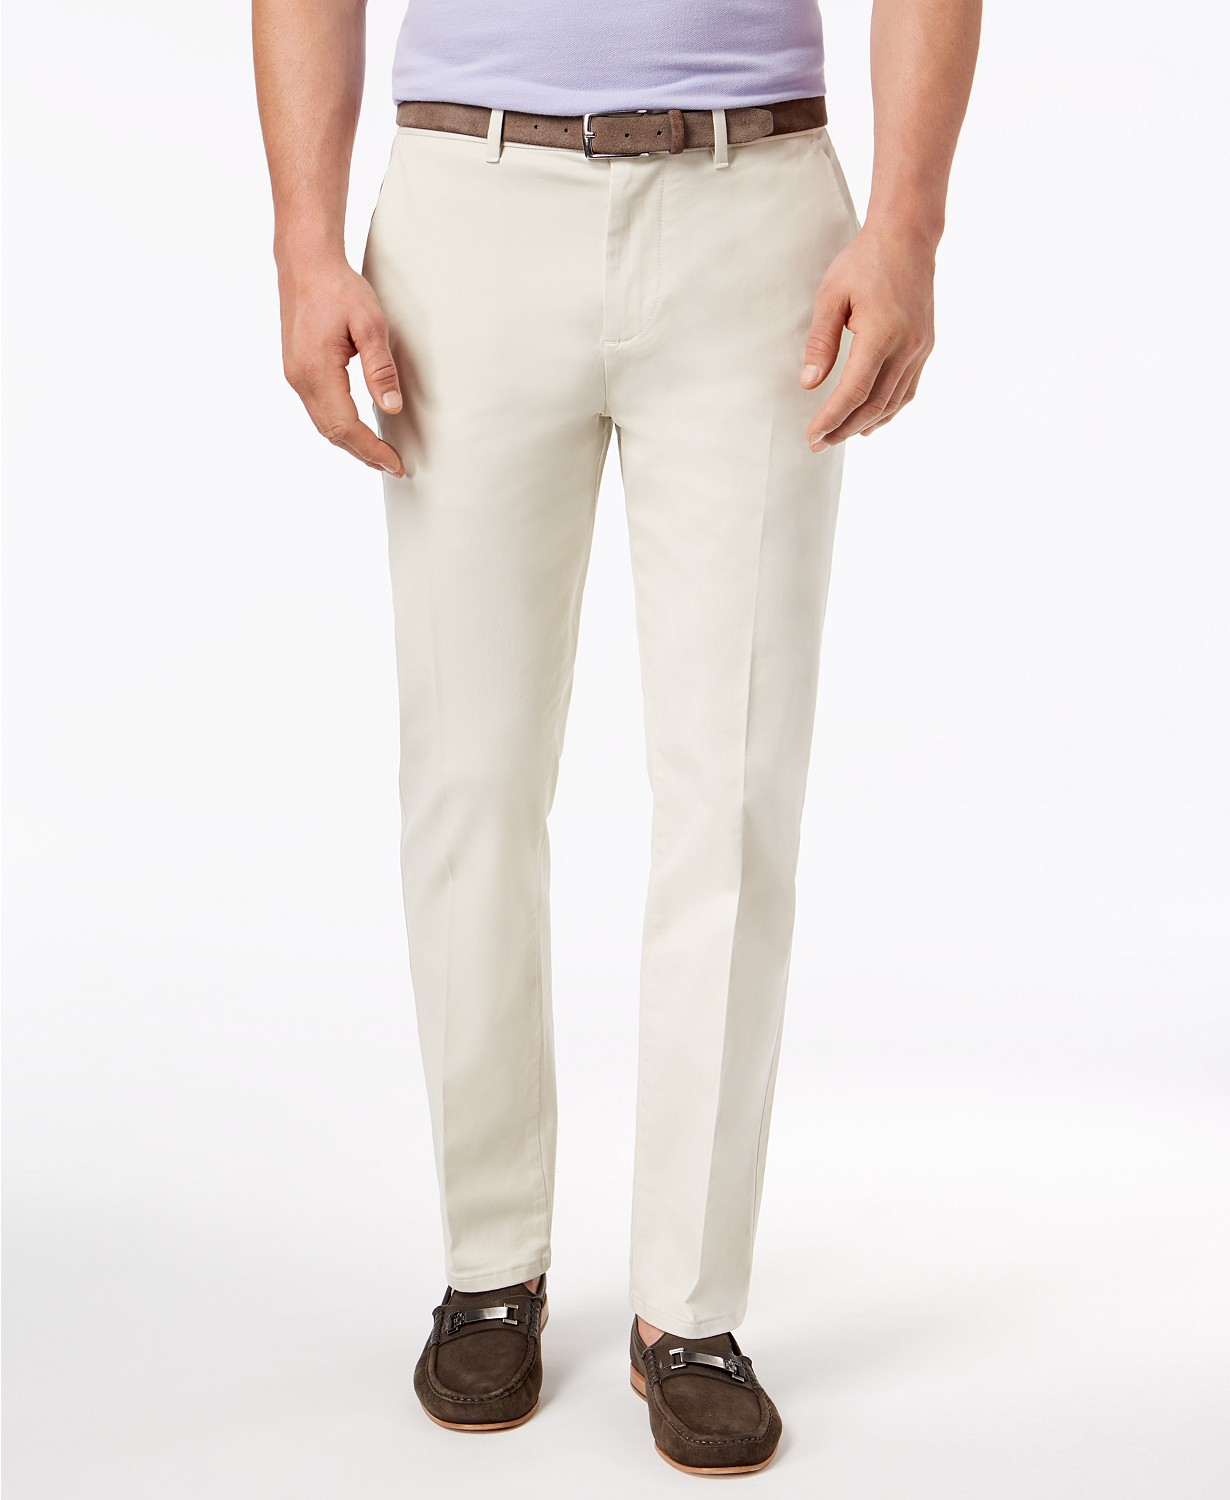 DKNY Men's Slim-Fit Tapered-Leg Sateen Pants